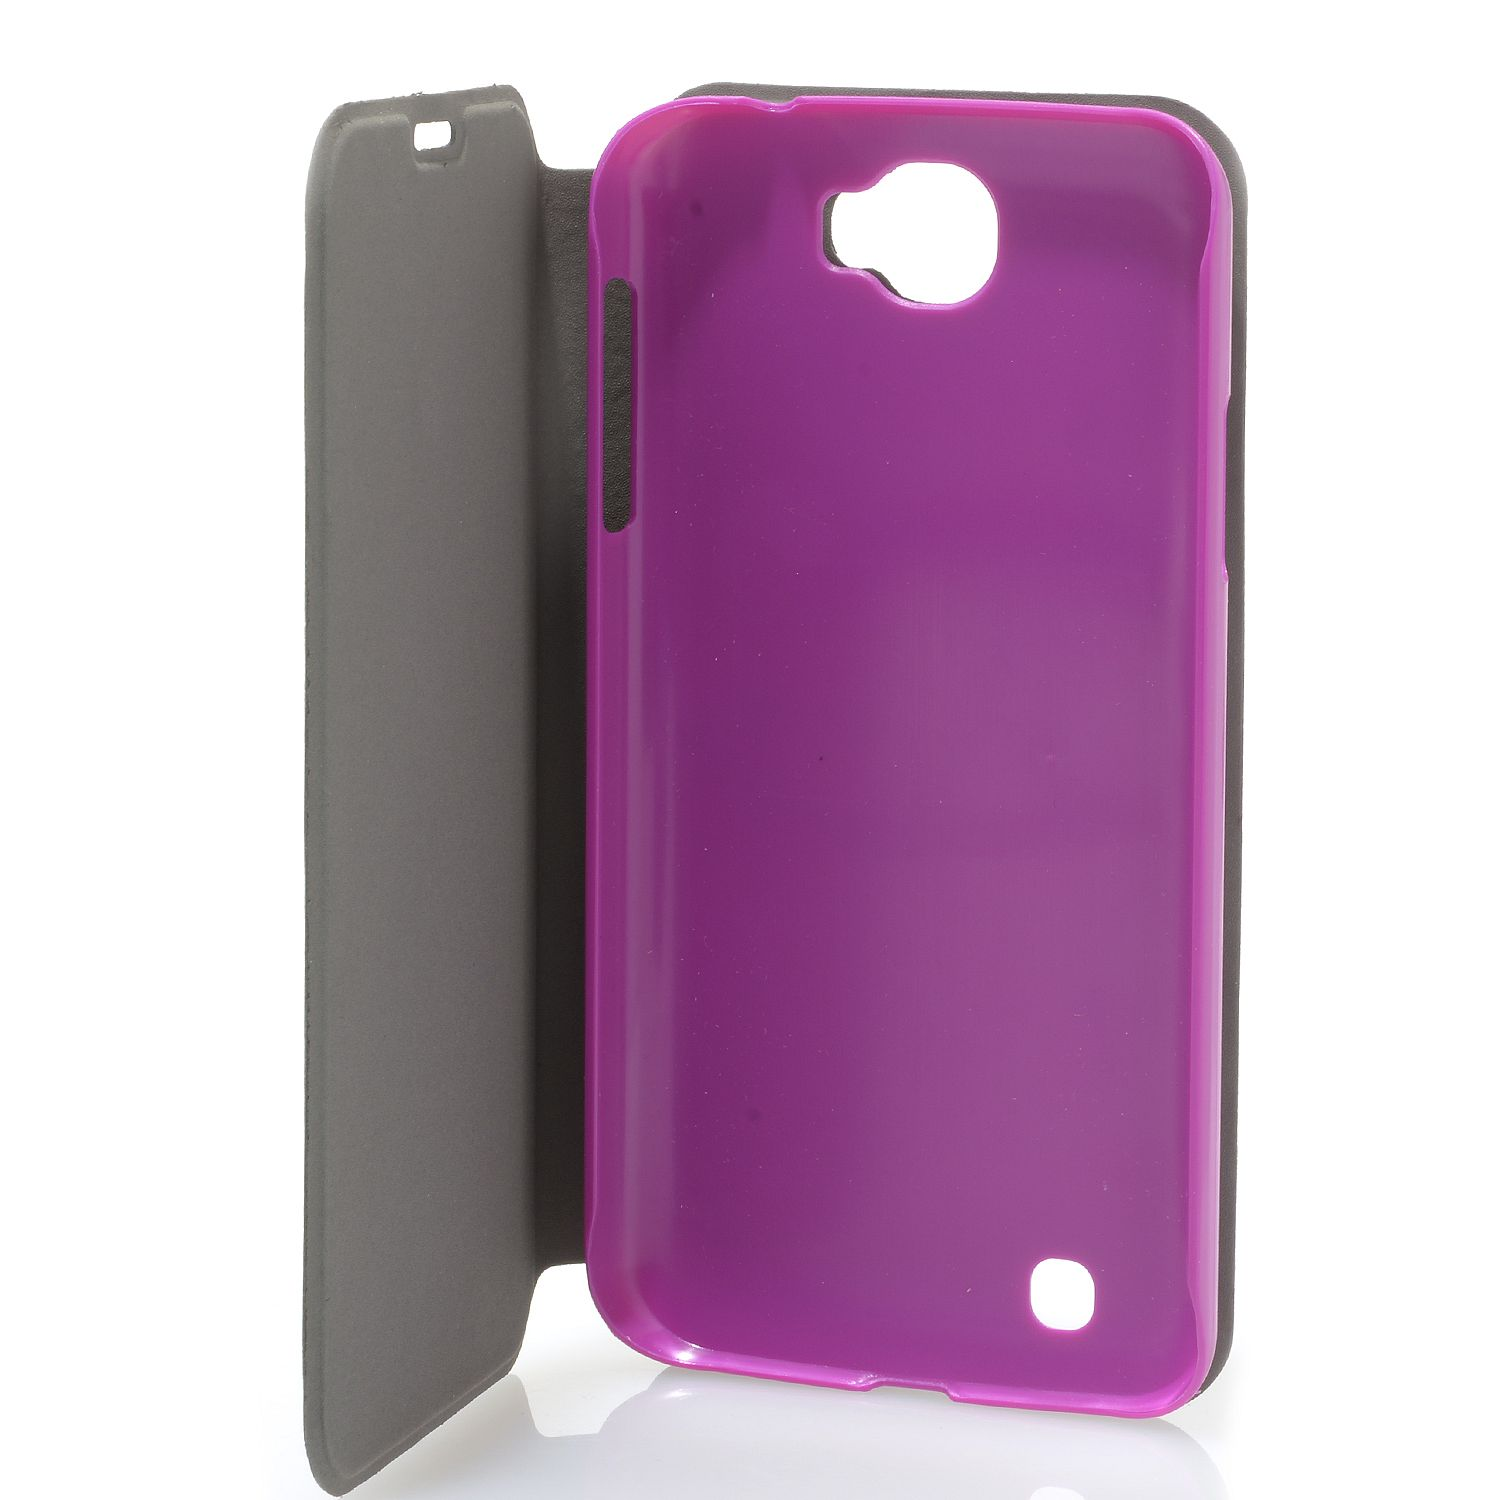 DIGITAL2 Flip Cover Folio Case For D2 D502P 5 Smartphone Purple Fitted